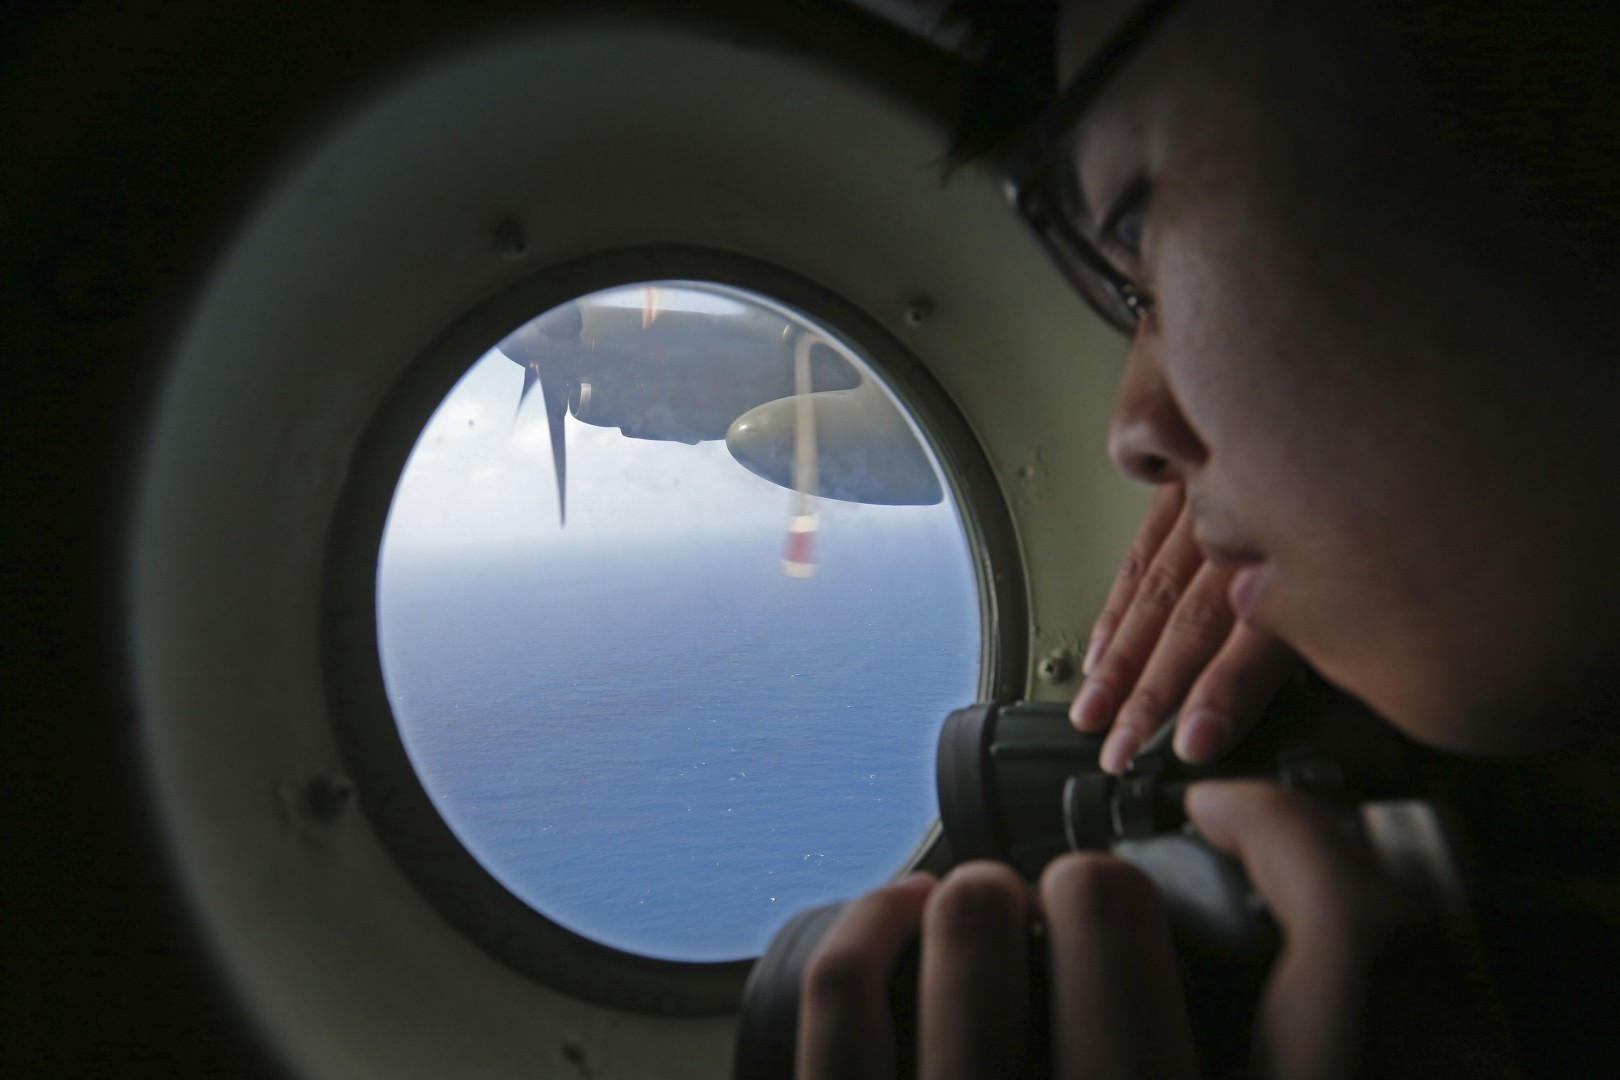 A member of the military personnel looks out of a Republic of Singapore Air Force (RSAF) C130 transport plane during a search for the missing Malaysia Airlines MH370 plane over the South China Sea March 11, 2014. REUTERS/Thong Kah Hoong Dennis/Lianhe Zaobao/Singapore Press Holdings Ltd    (DISASTER TRANSPORT MILITARY) ATTENTION EDITORS - THIS IMAGE HAS BEEN SUPPLIED BY A THIRD PARTY. FOR EDITORIAL USE ONLY. NOT FOR SALE FOR MARKETING OR ADVERTISING CAMPAIGNS. NO SALES. NO ARCHIVES. NO ONLINE USE. NOT FOR SALE FOR INTERNET DISPLAY.  IT IS DISTRIBUTED, EXACTLY AS RECEIVED BY REUTERS, AS A SERVICE TO CLIENTS. TEMPLATE OUT. SINGAPORE OUT. NO COMMERCIAL OR EDITORIAL SALES IN SINGAPORE